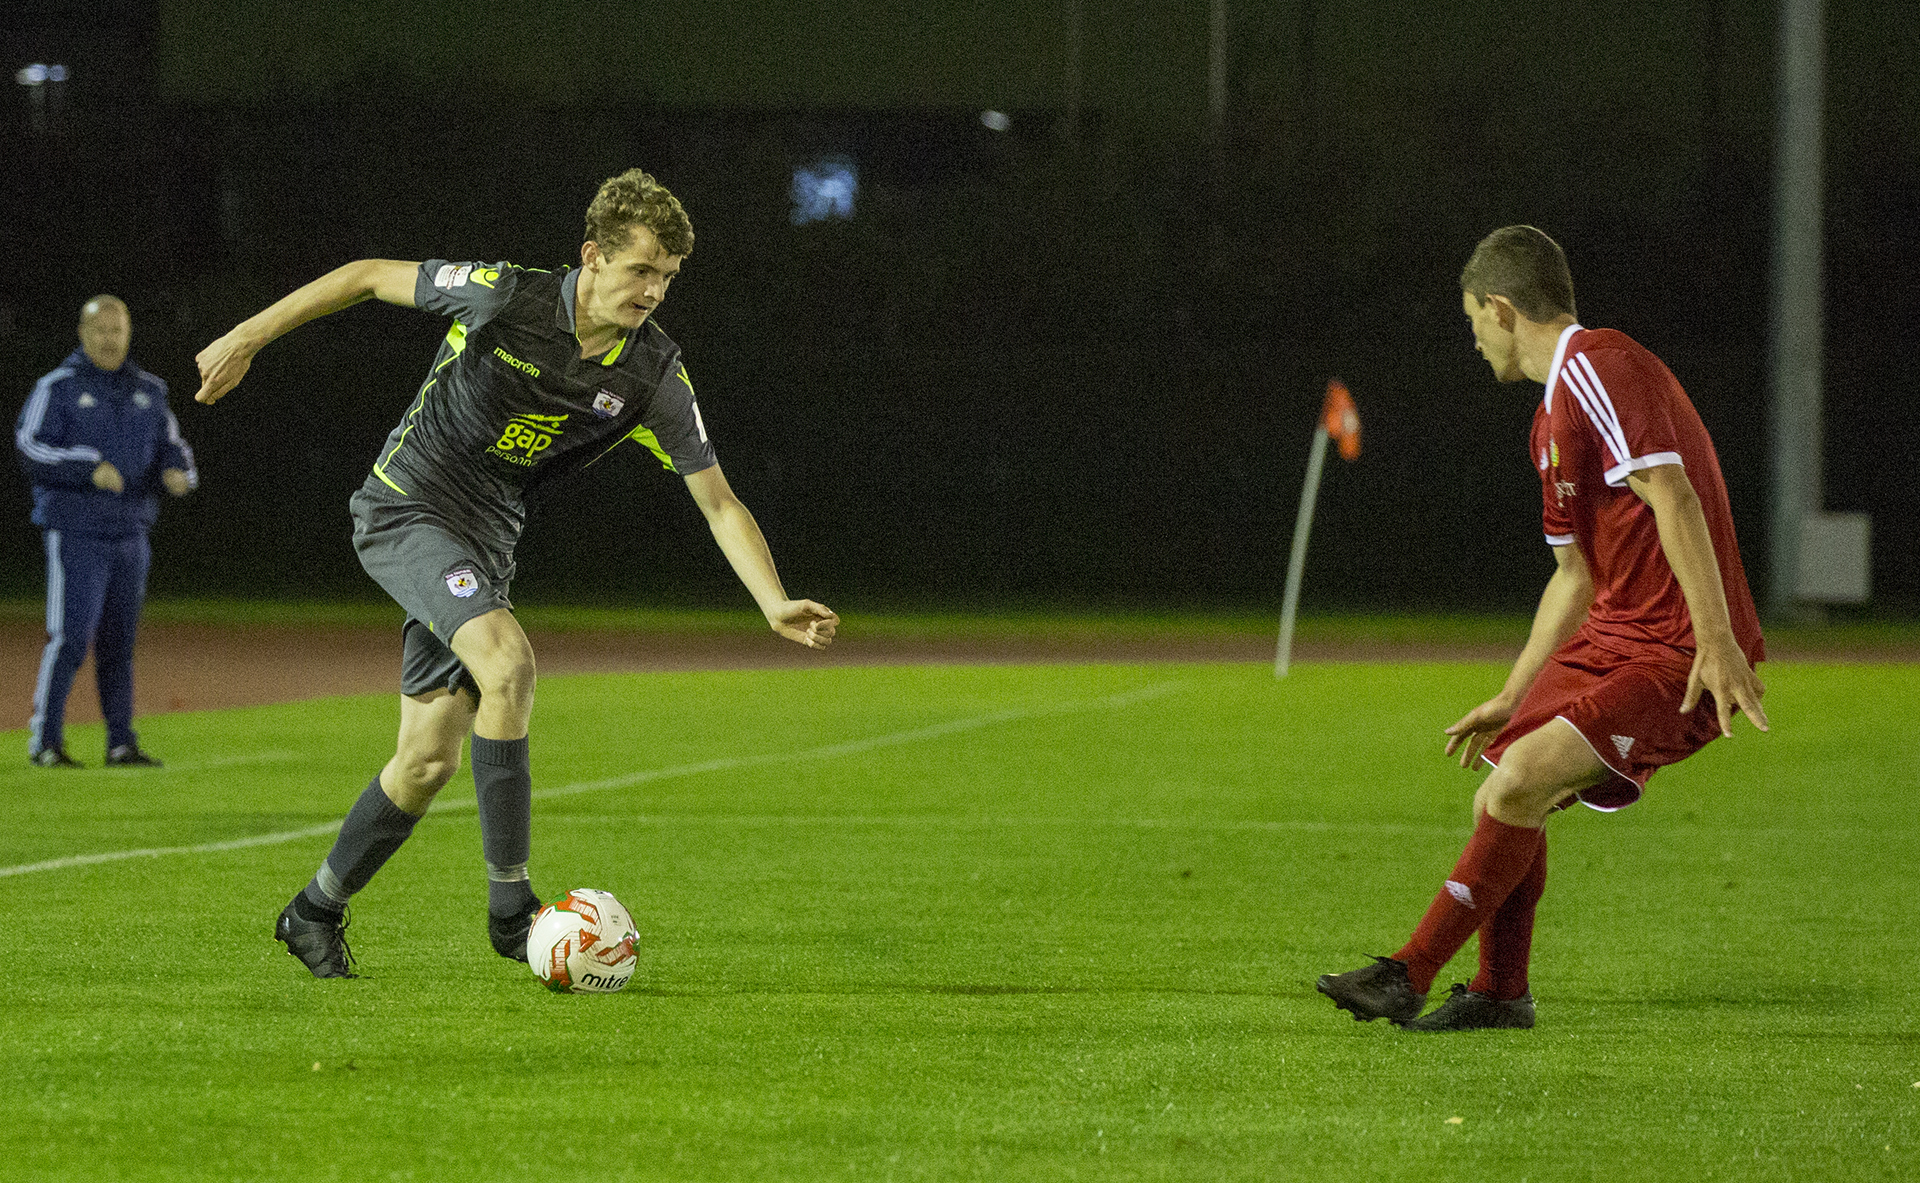 18-year-old Luke Blizzard made his competitive debut for The Nomads - © NCM Media